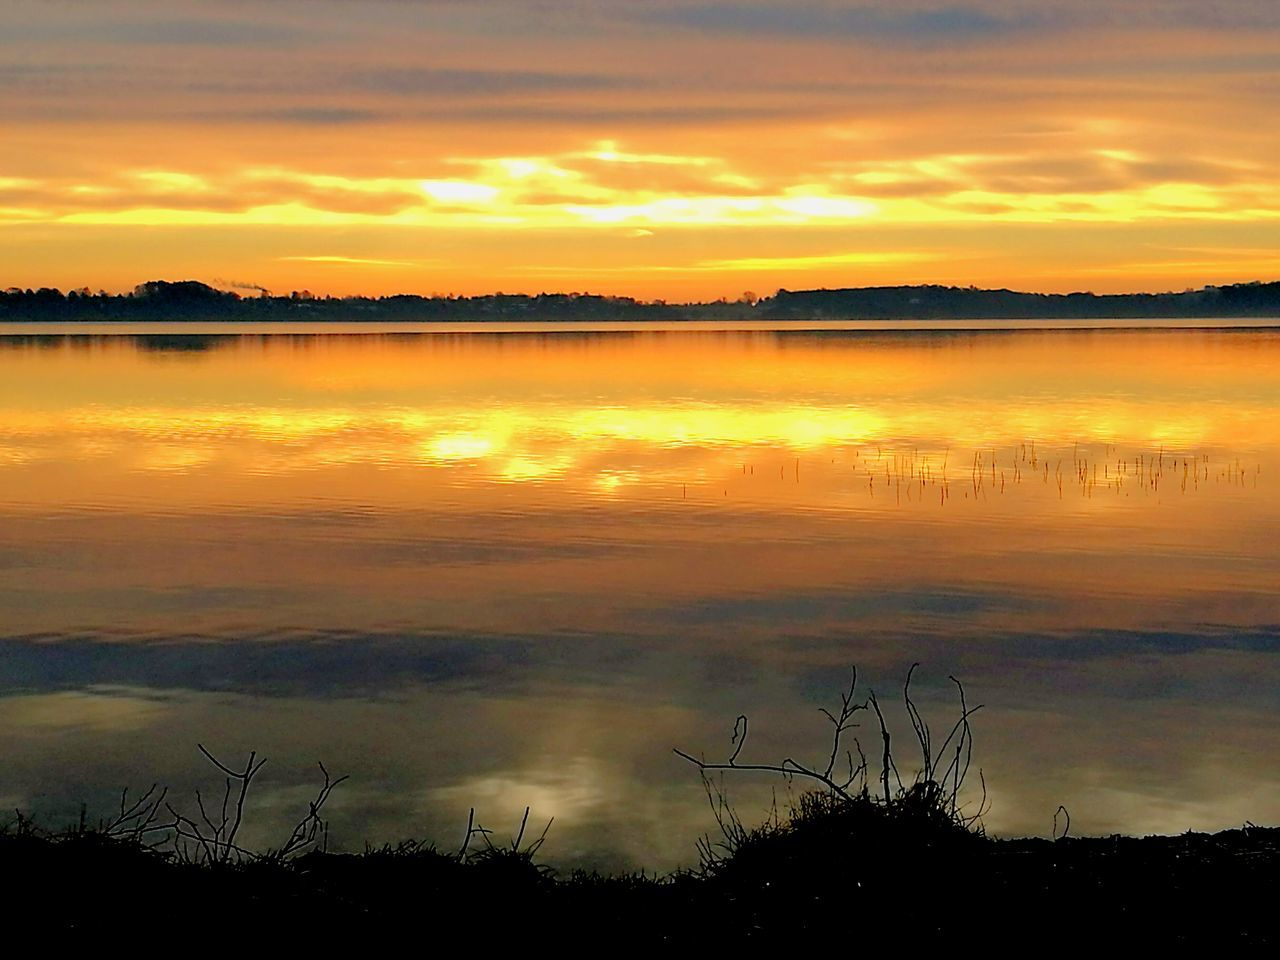 Denmark 🇩🇰 Danmark Furesø Sunrise Reflection Water Orange Color Lake Lake View Beauty In Nature Nature Tranquility Outdoors Sky Scenics Cloud - Sky Dramatic Sky Awe No People Spring Is Coming  Spring Forår EyeEm My Life